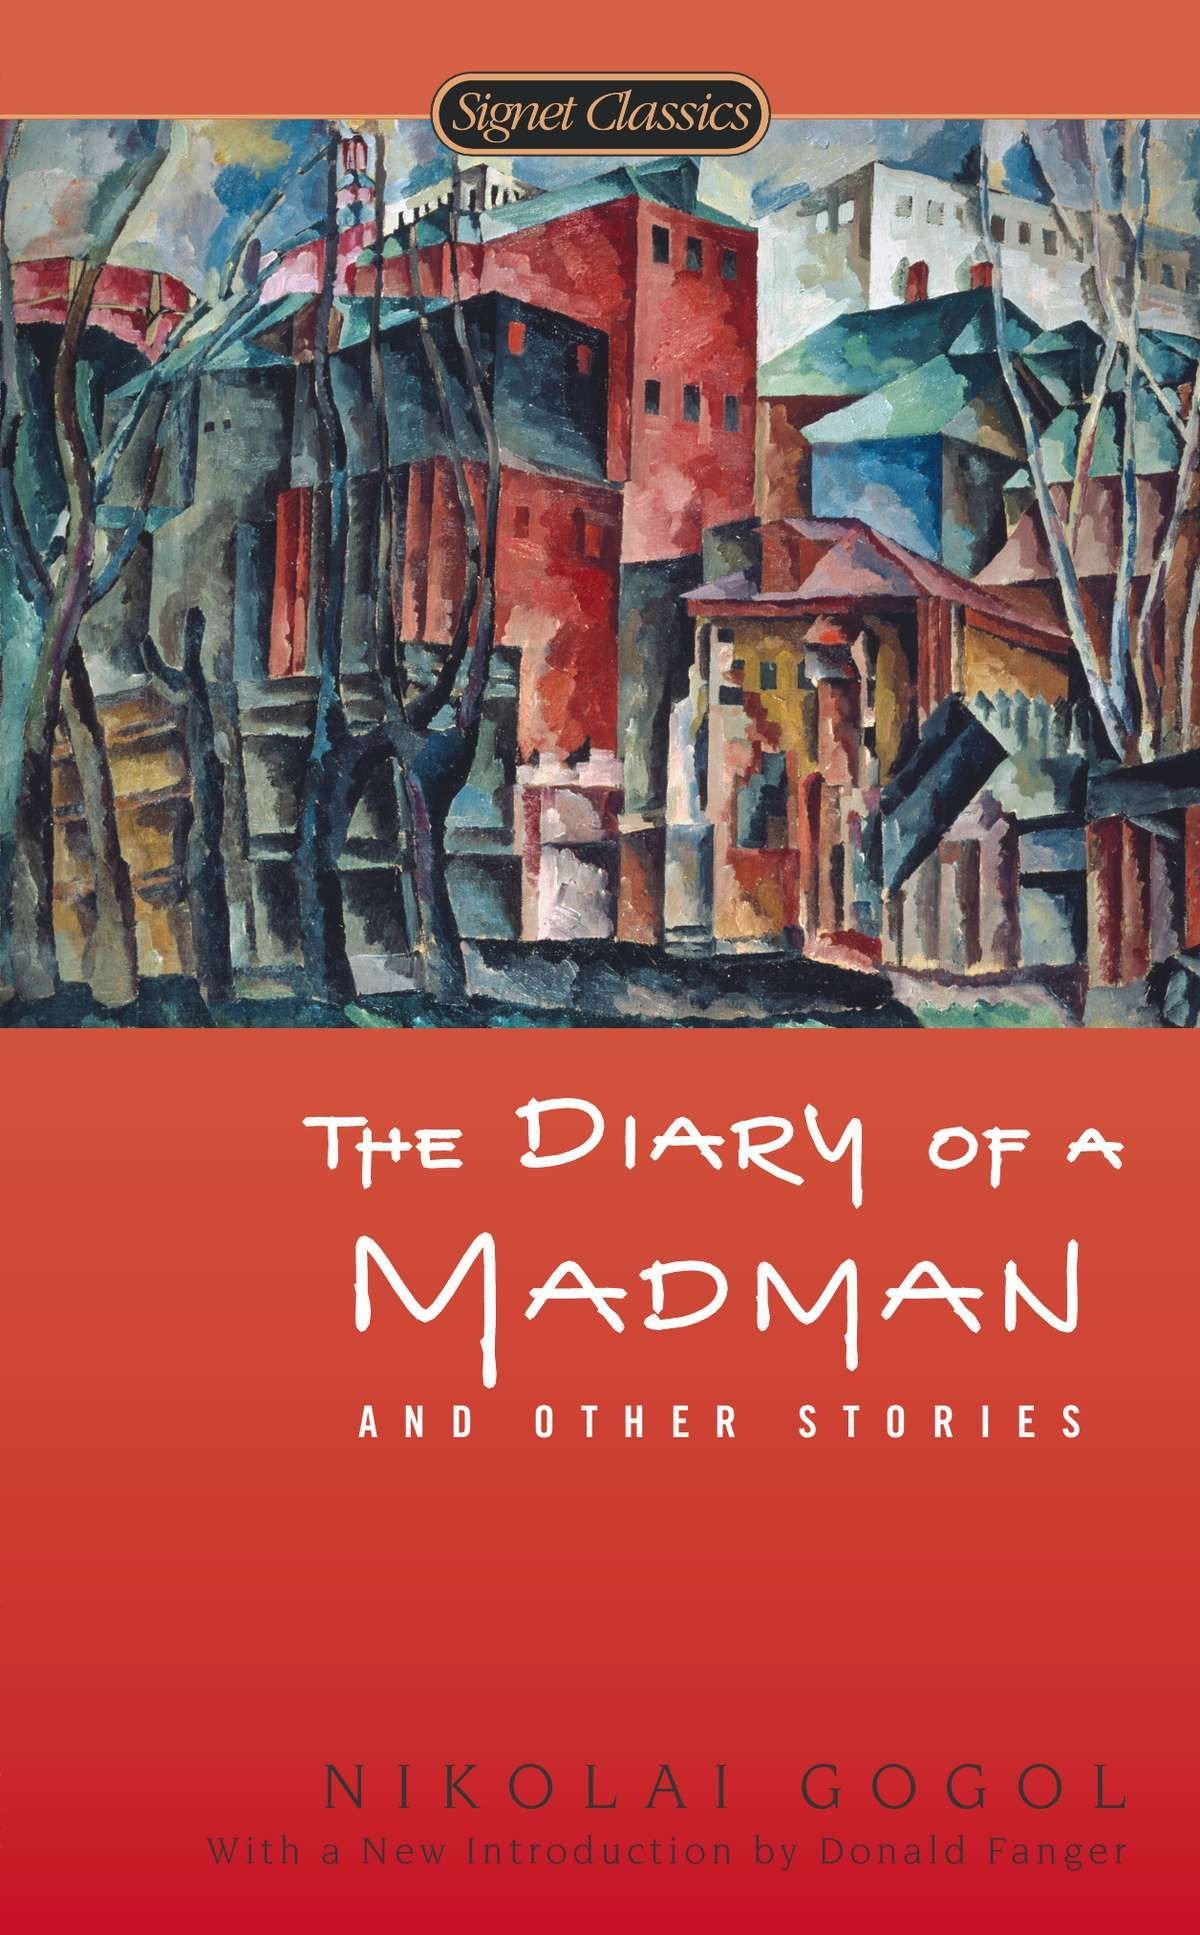 Download The Diary of a Madman and Other Stories (Signet Classics) PDF